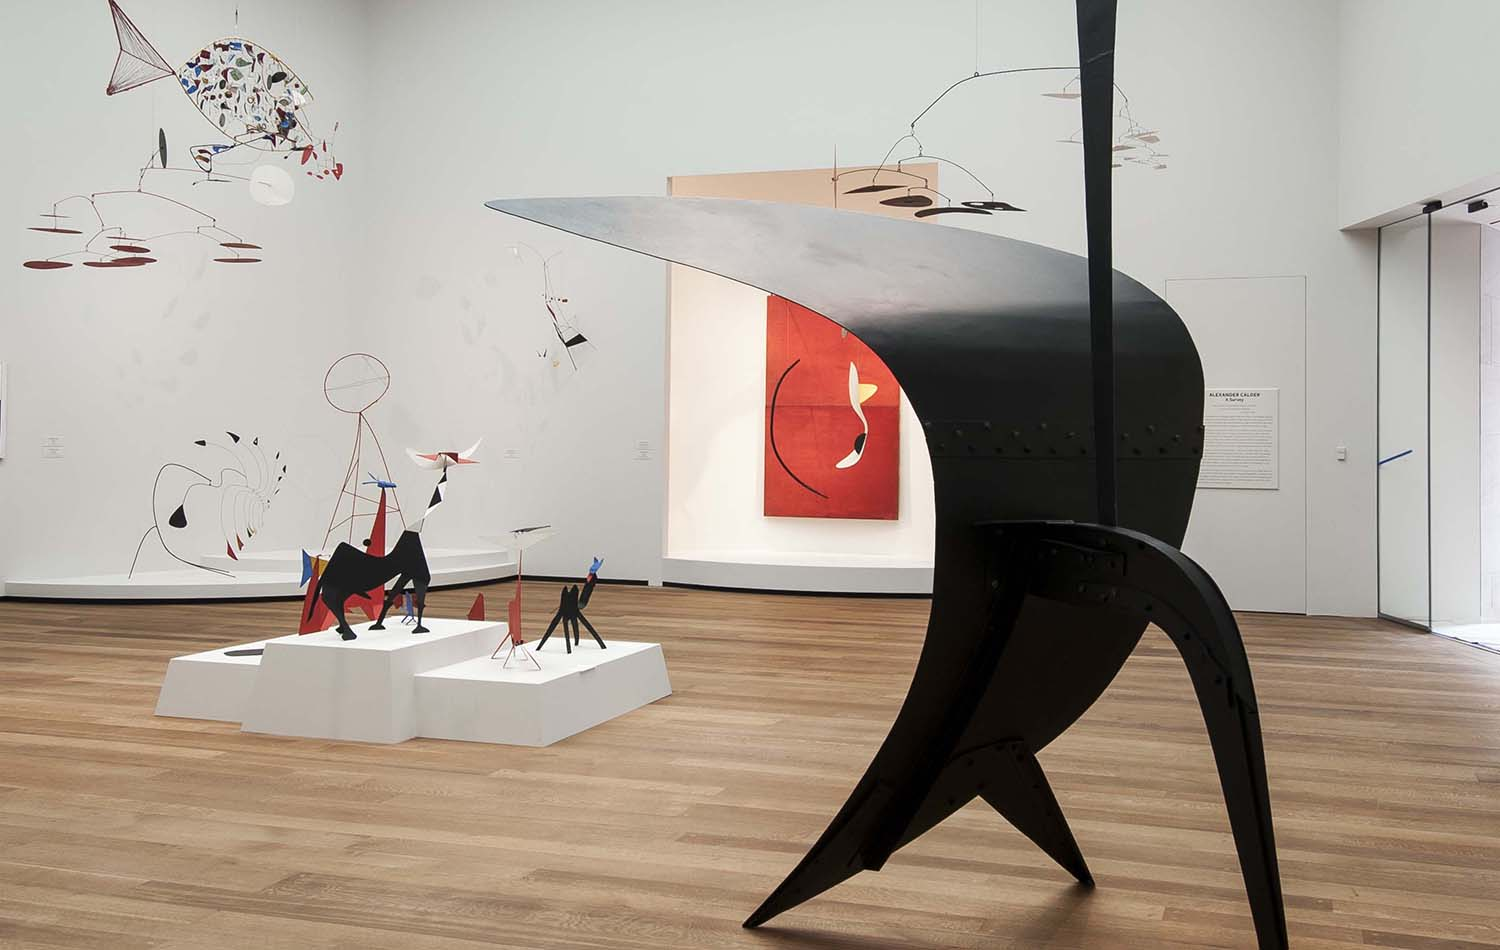 A top-floor gallery was built into one of I.M. Pei's tower spaces, making room for a large display of works by Alexander Calder. Bill O'Leary/The Washington Post)